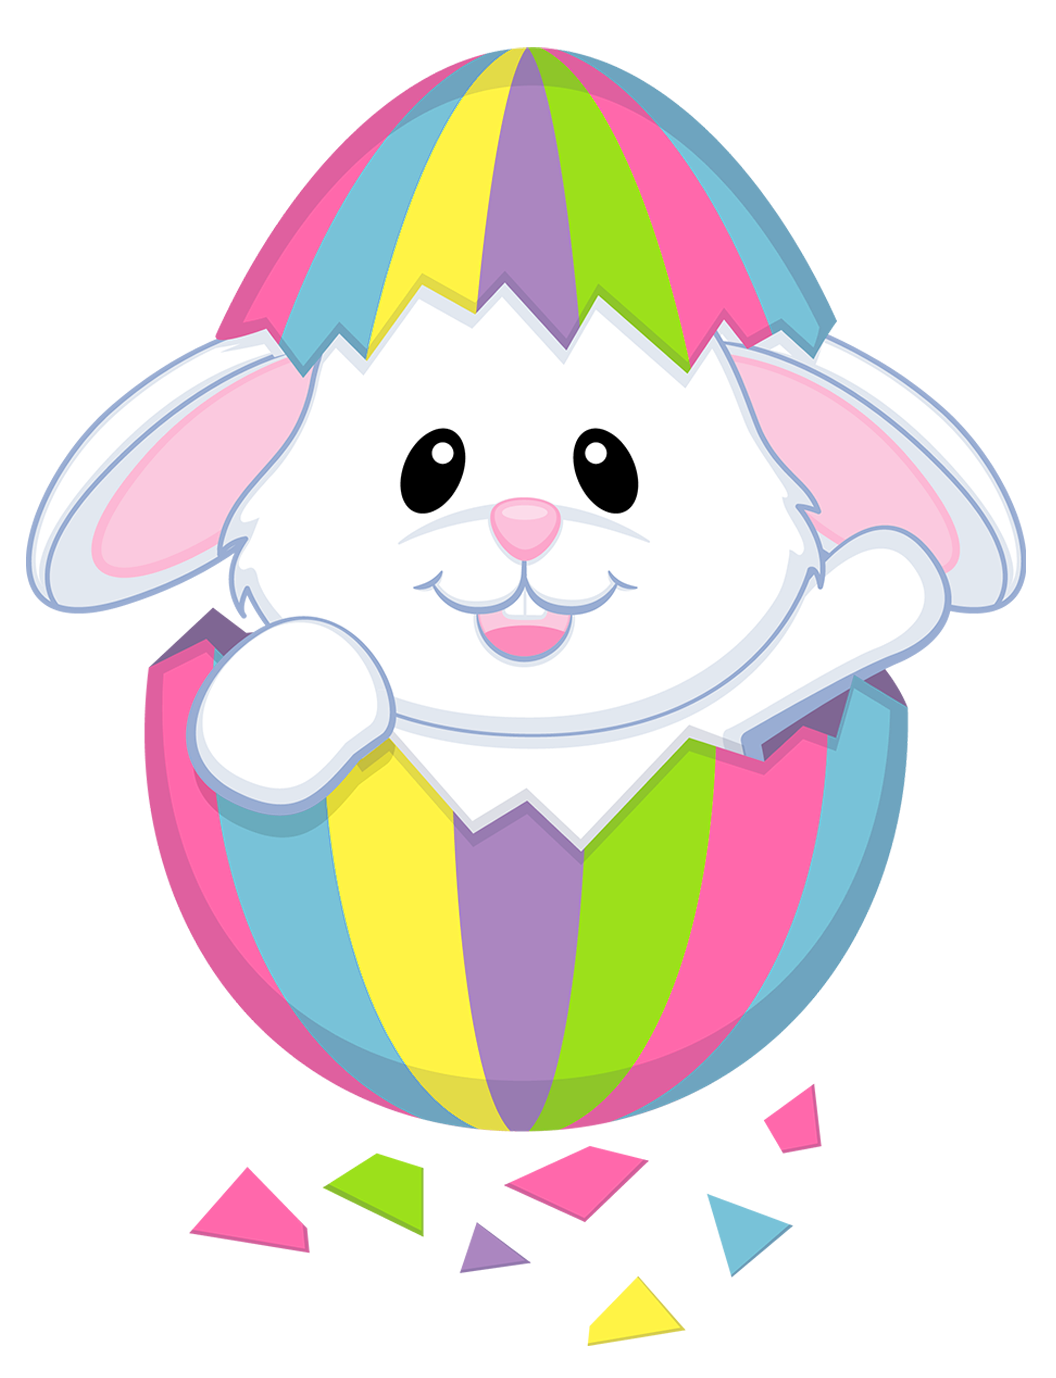 Png clipart transparent background free library White bunny clipart transparent background - ClipartFest free library